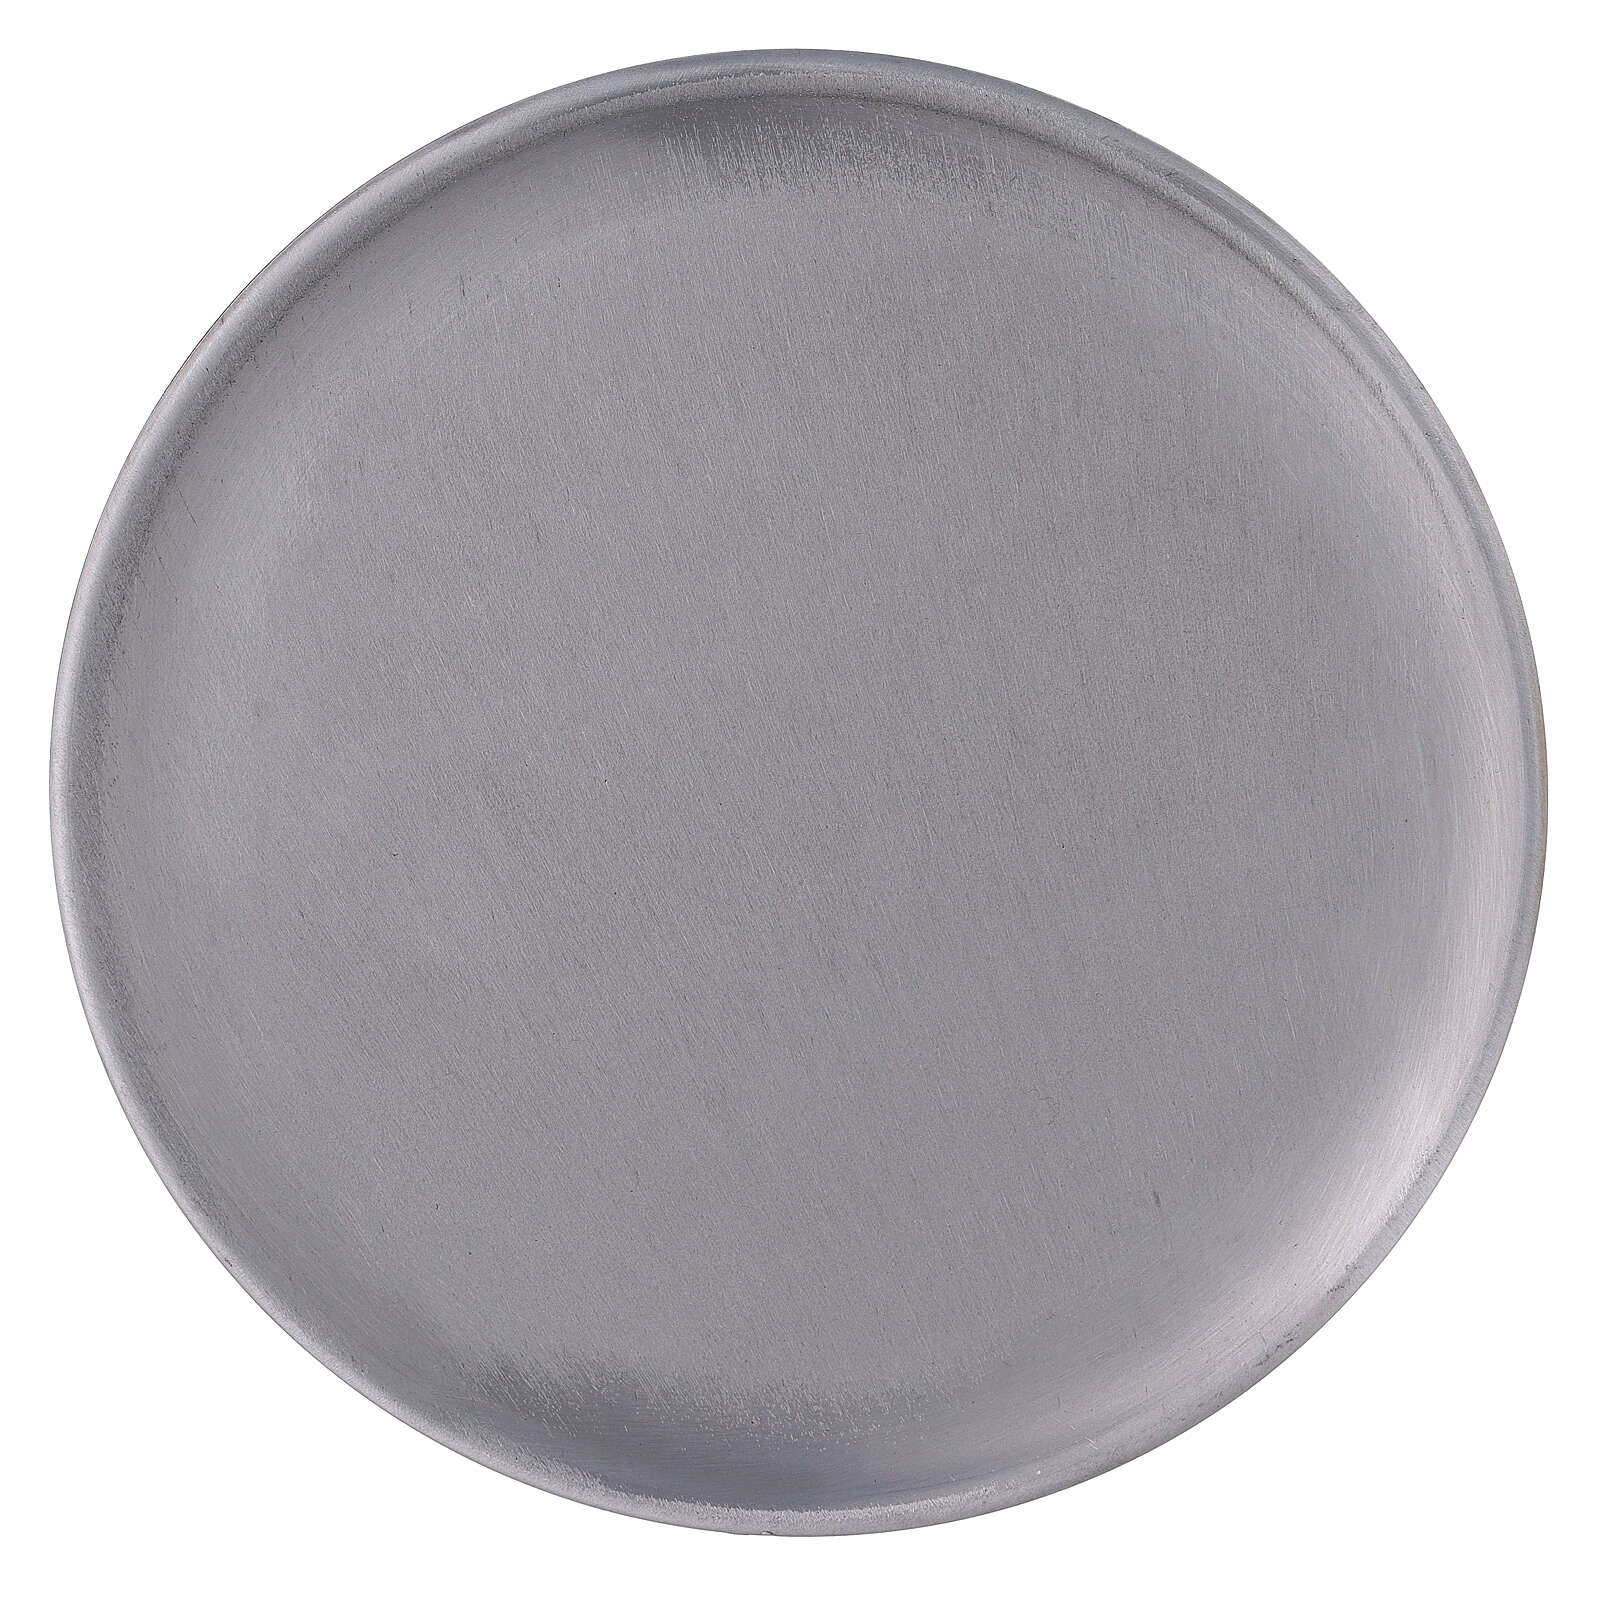 Brushed aluminium candle holder 7 1/2 in 3